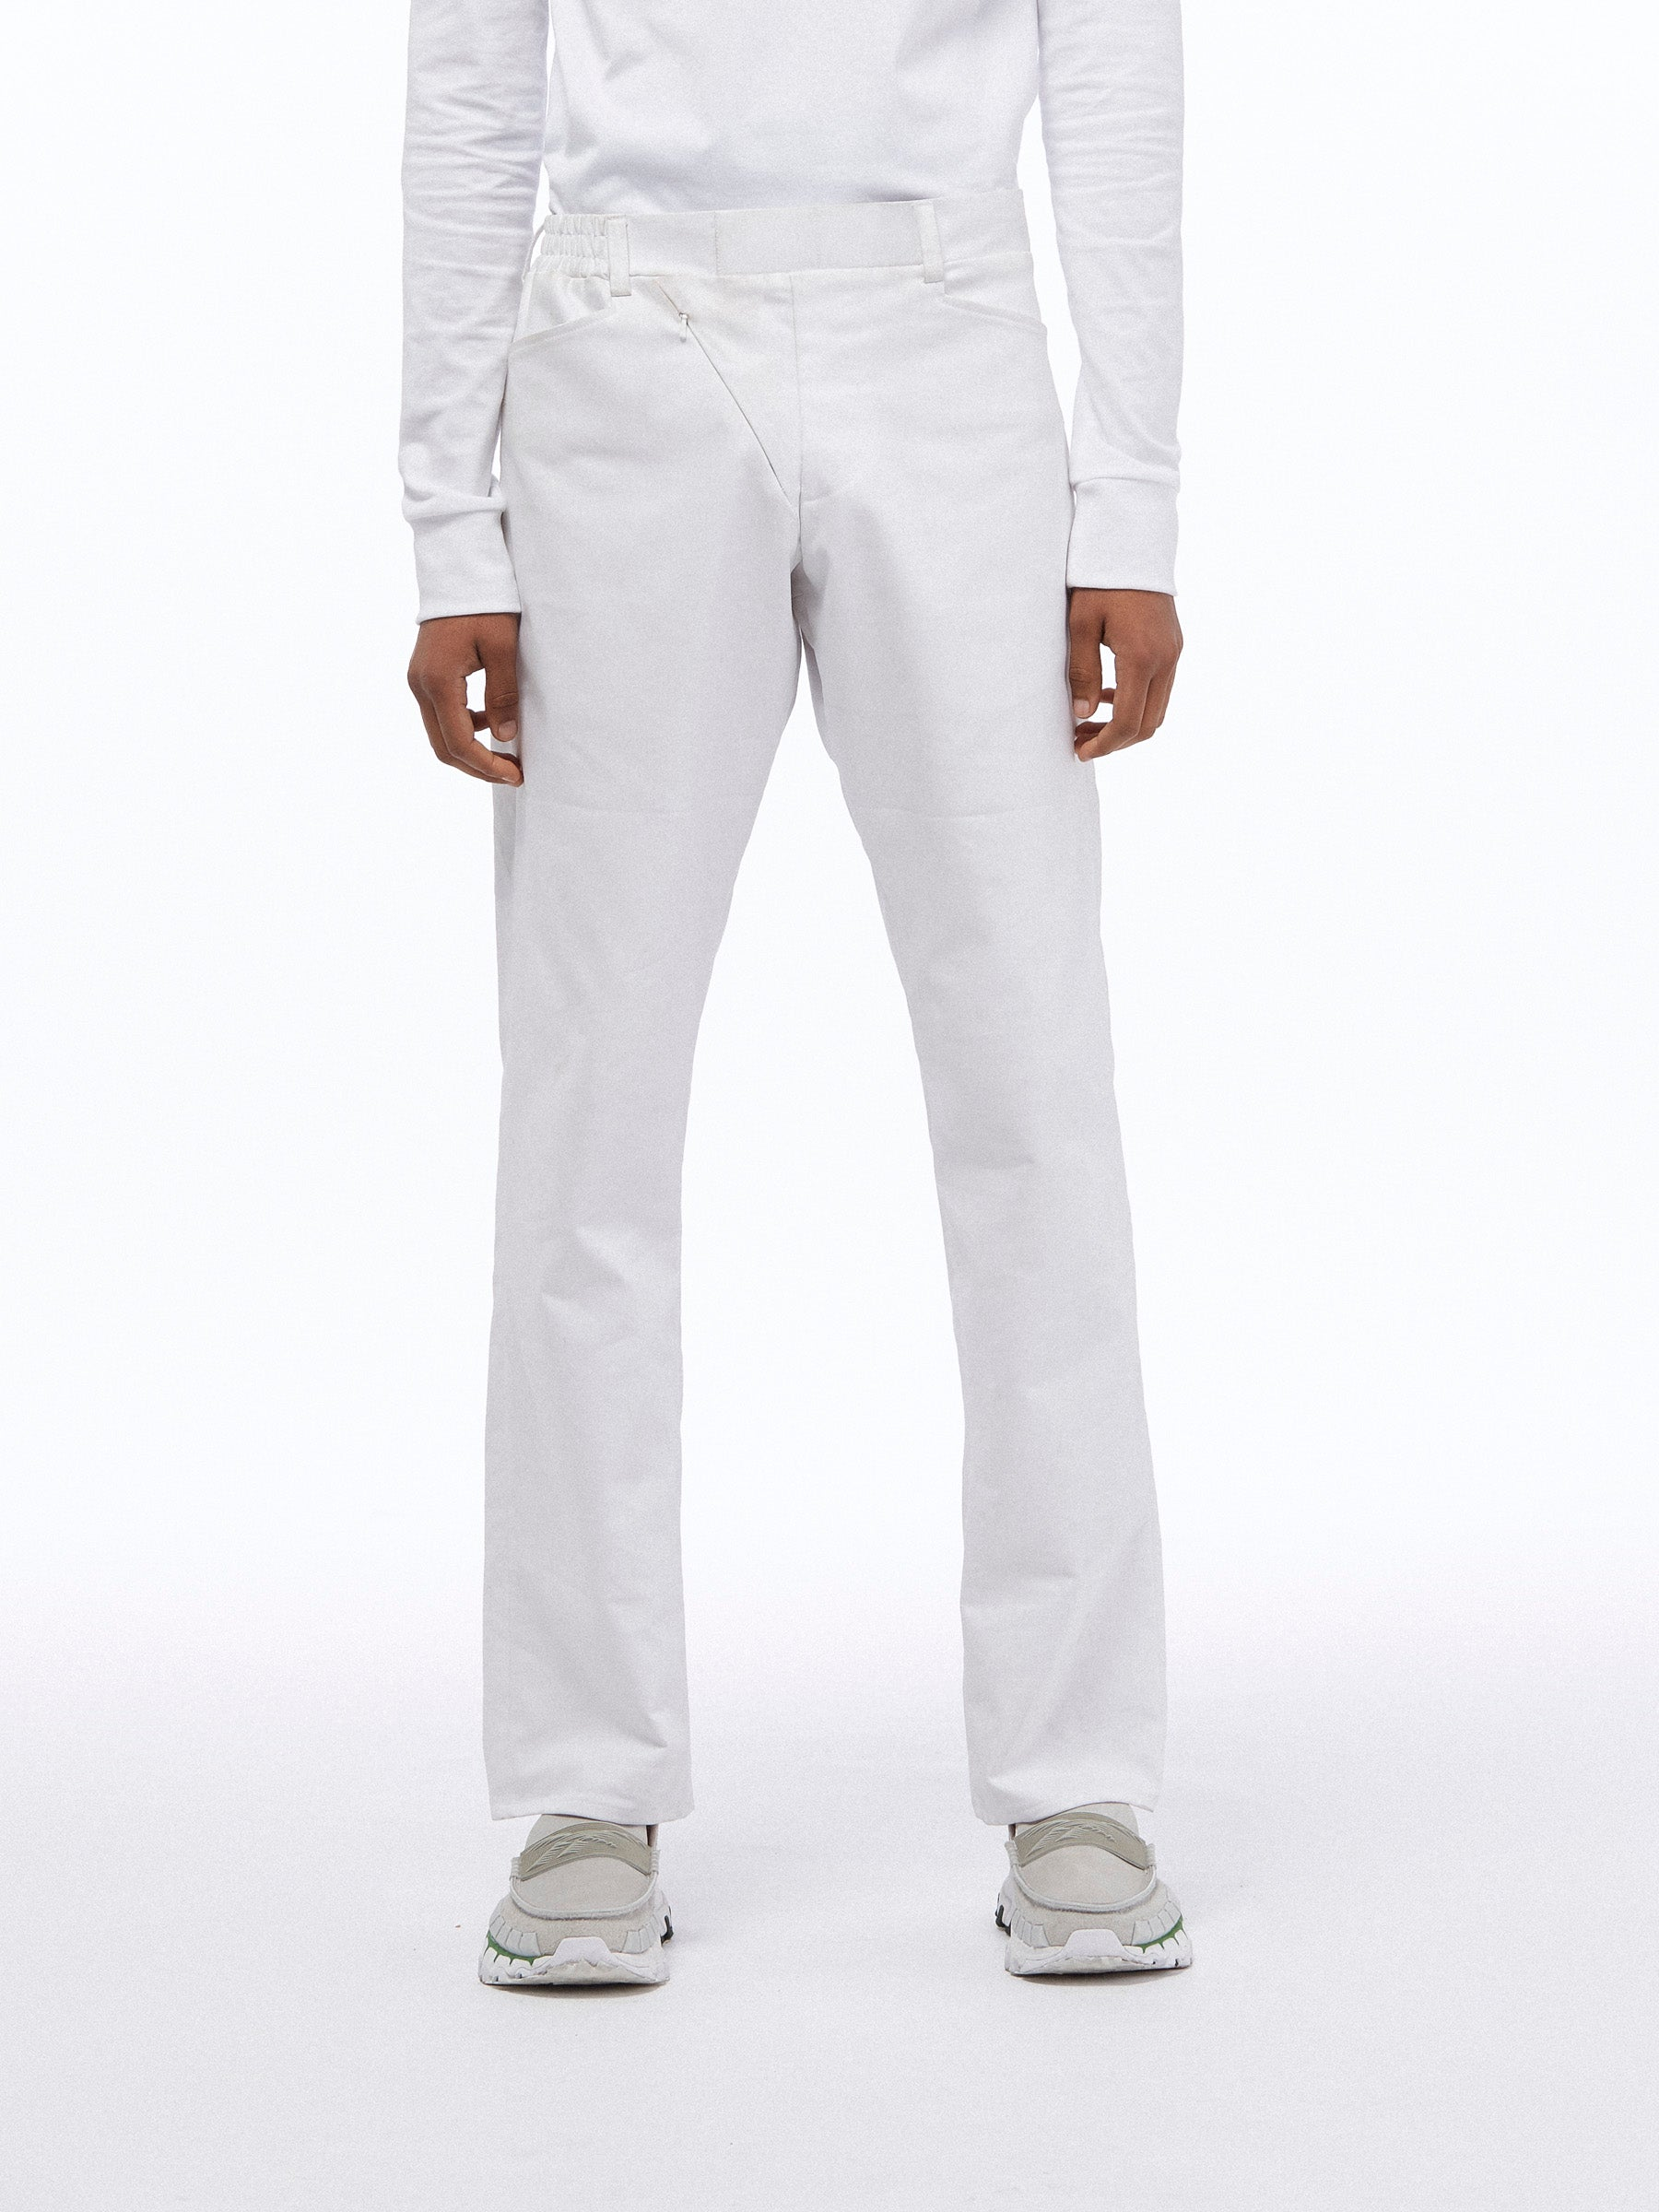 GOLF TROUSERS - WHITE